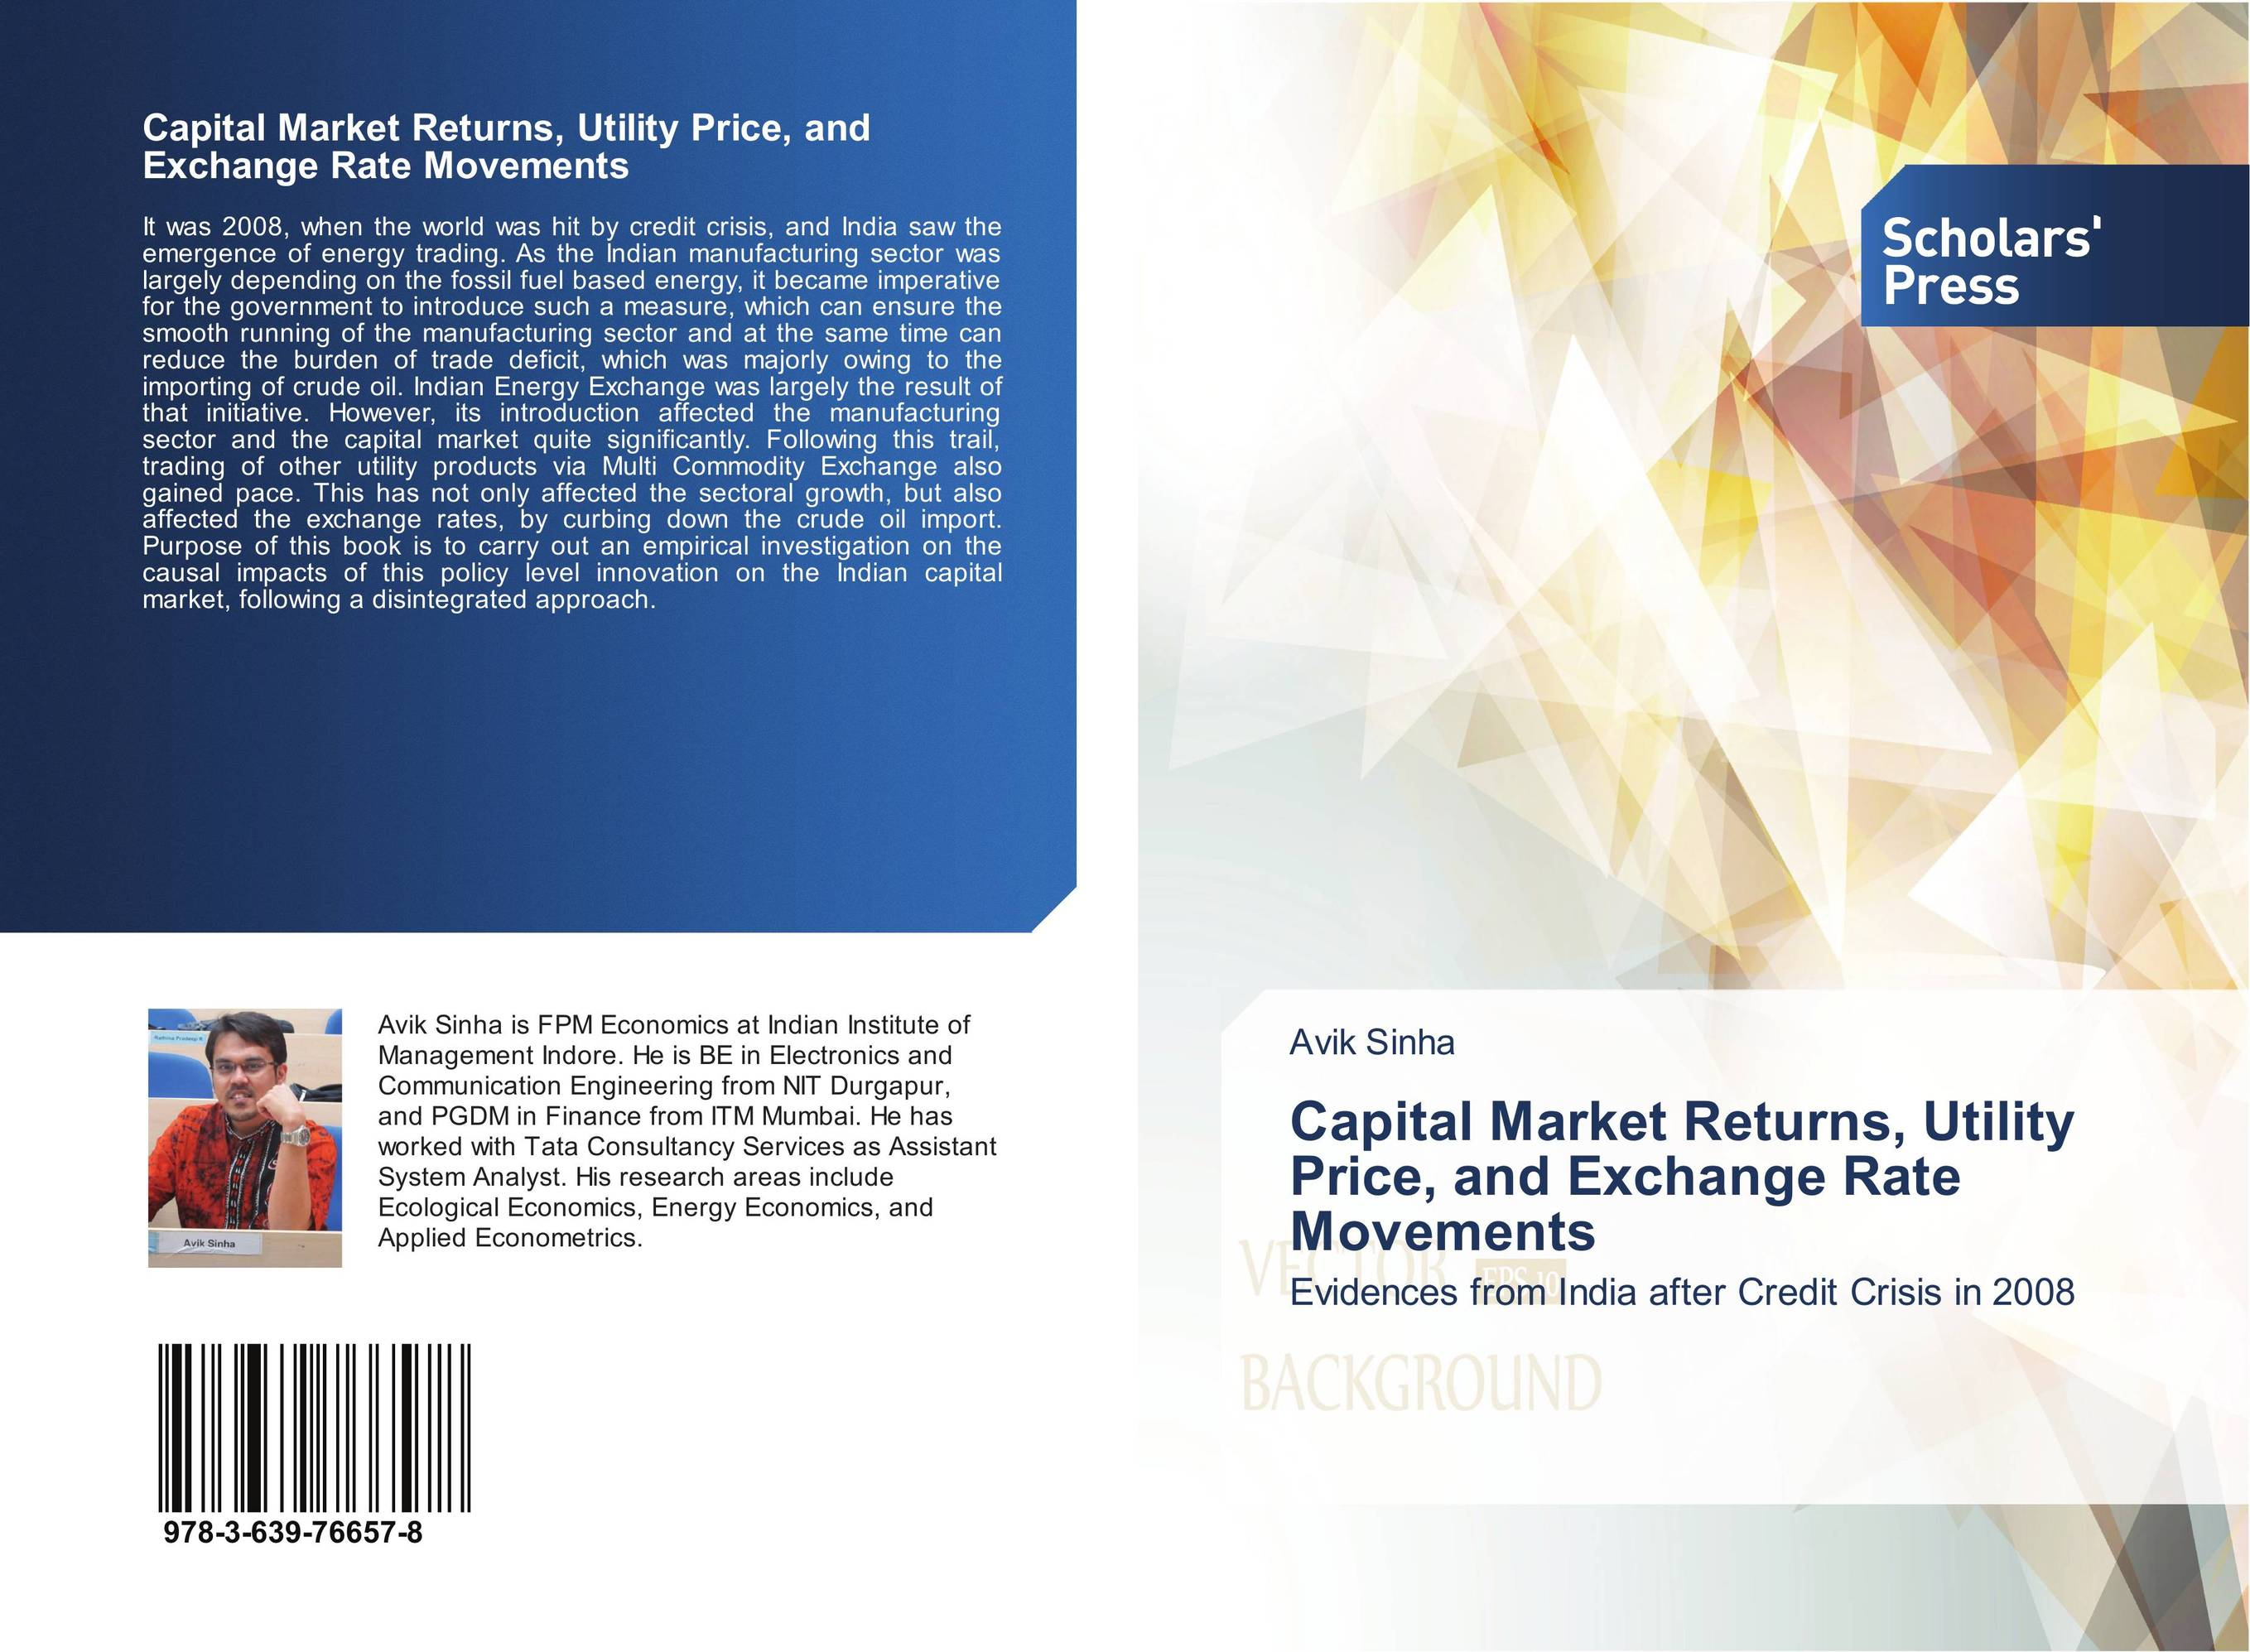 Capital Market Returns, Utility Price, and Exchange Rate Movements